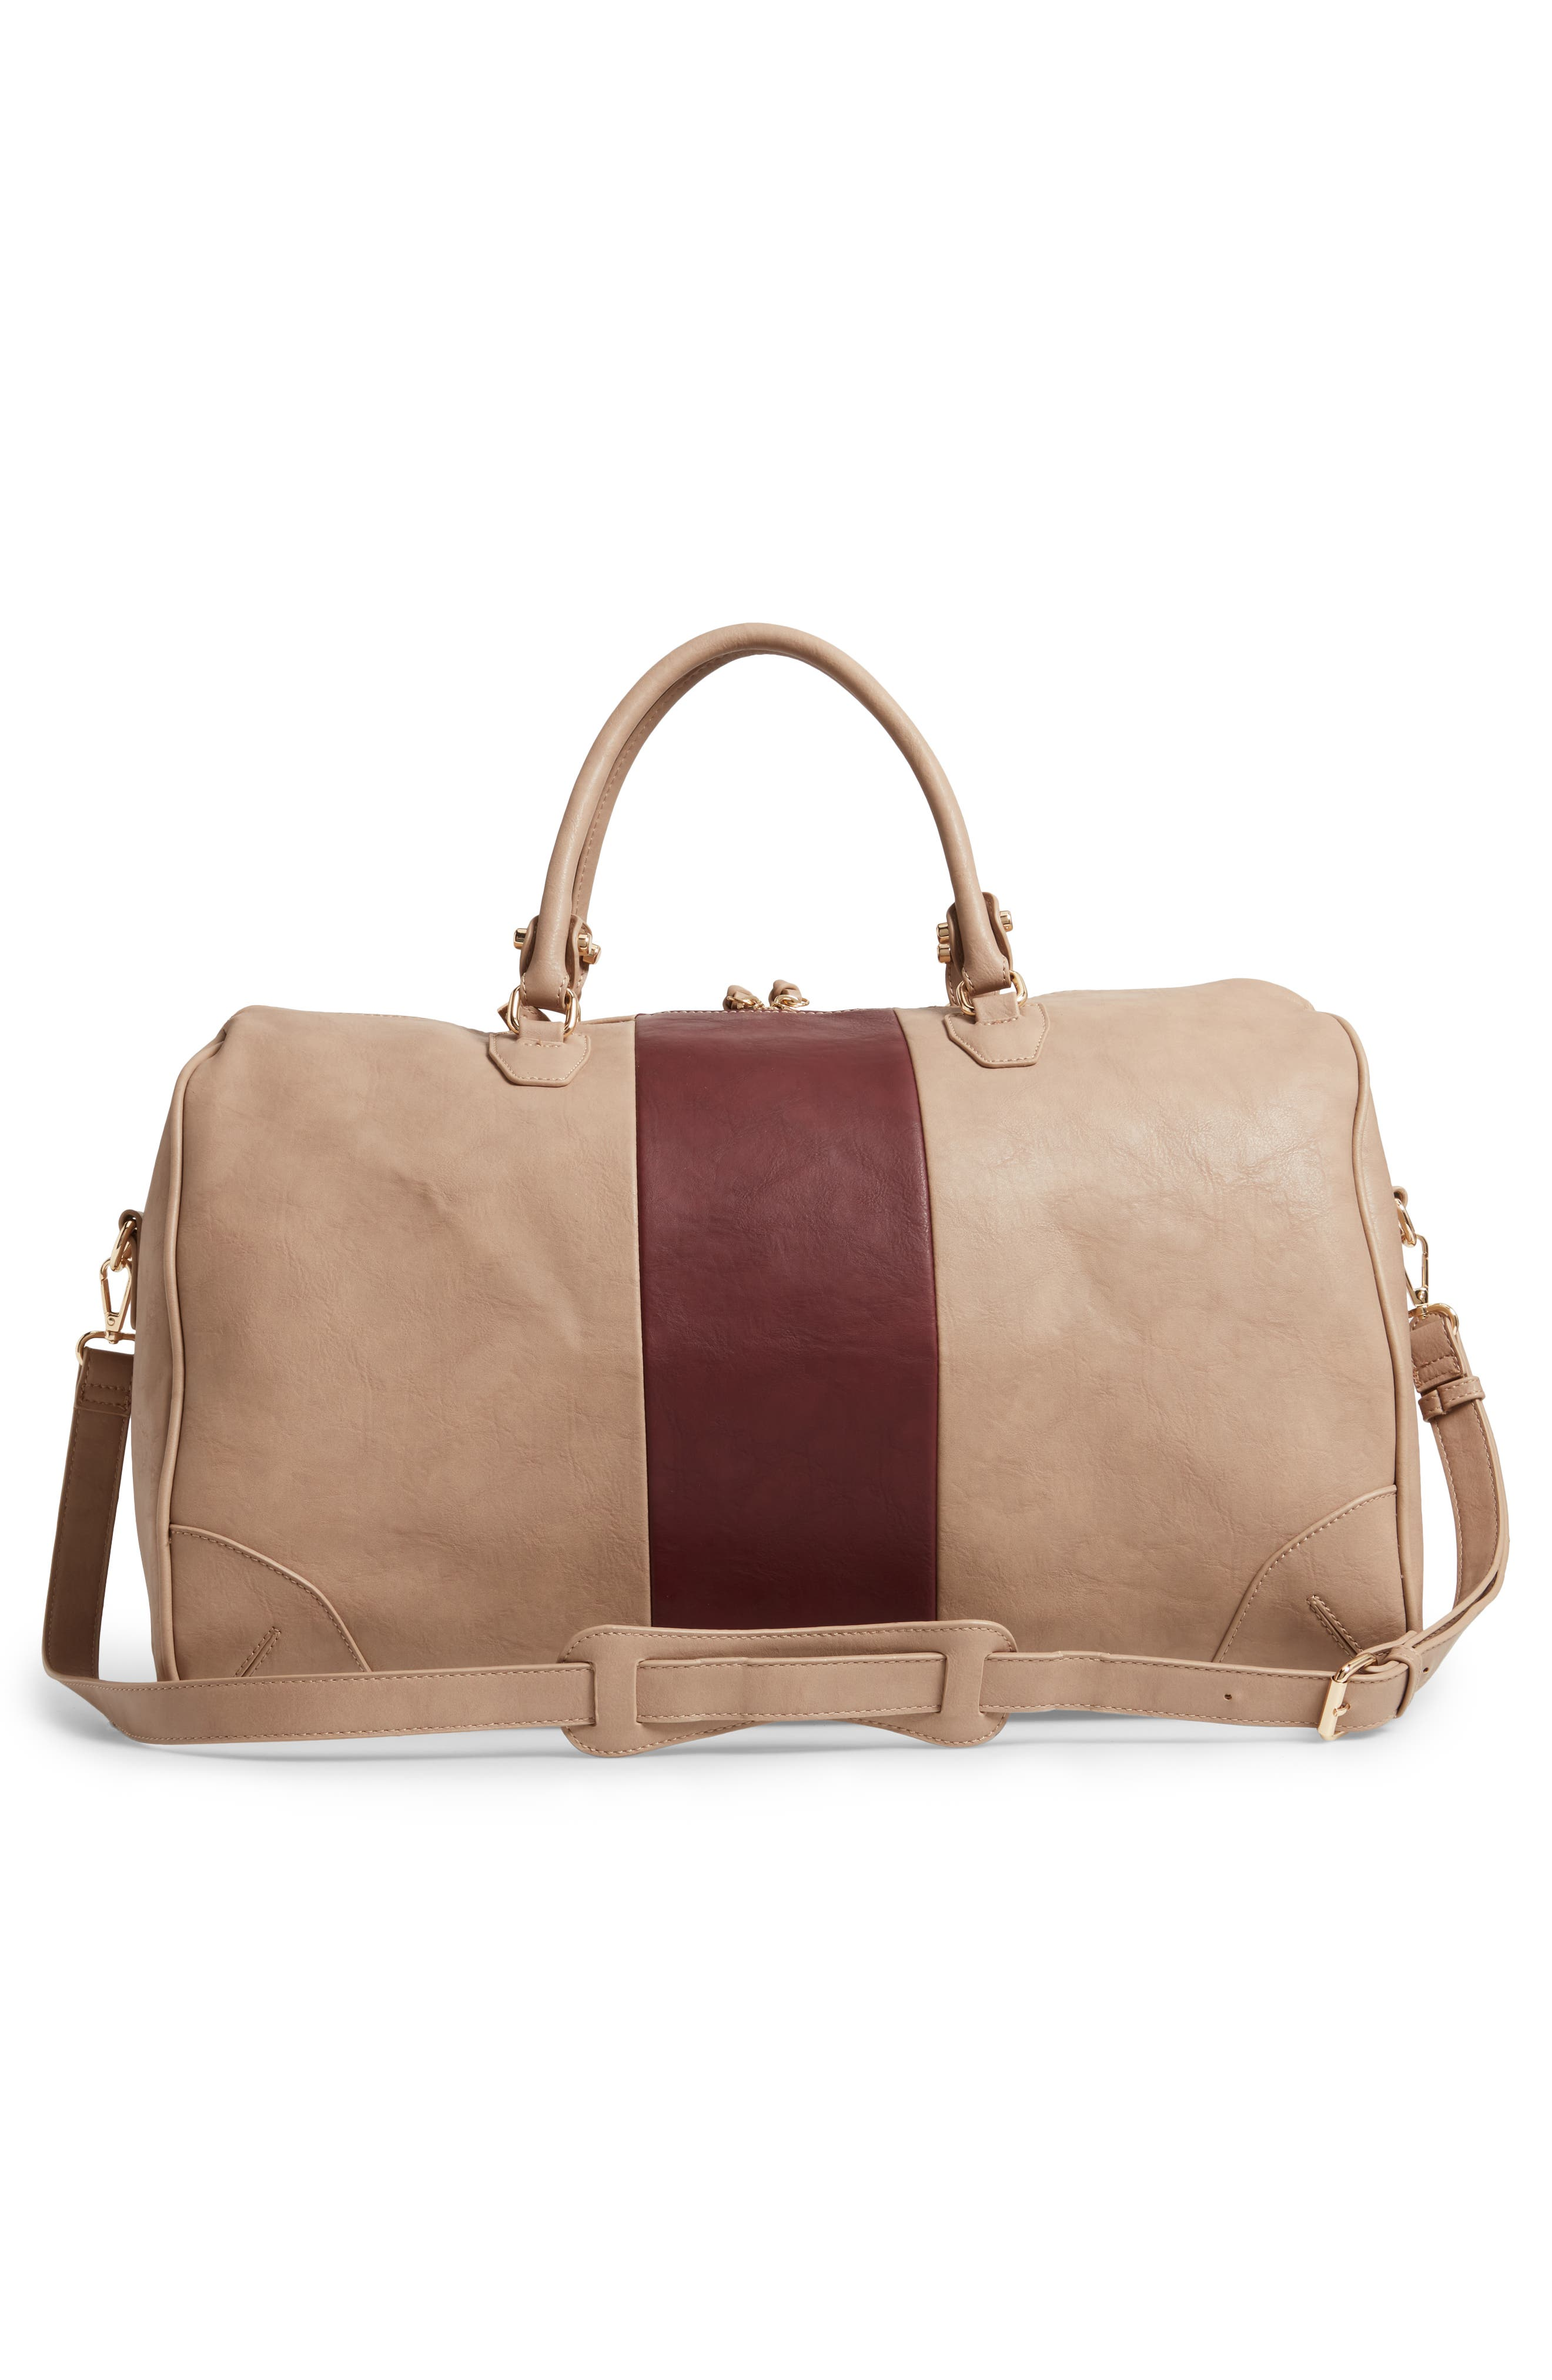 'Robin' Faux Leather Weekend Bag,                             Alternate thumbnail 3, color,                             TAUPE